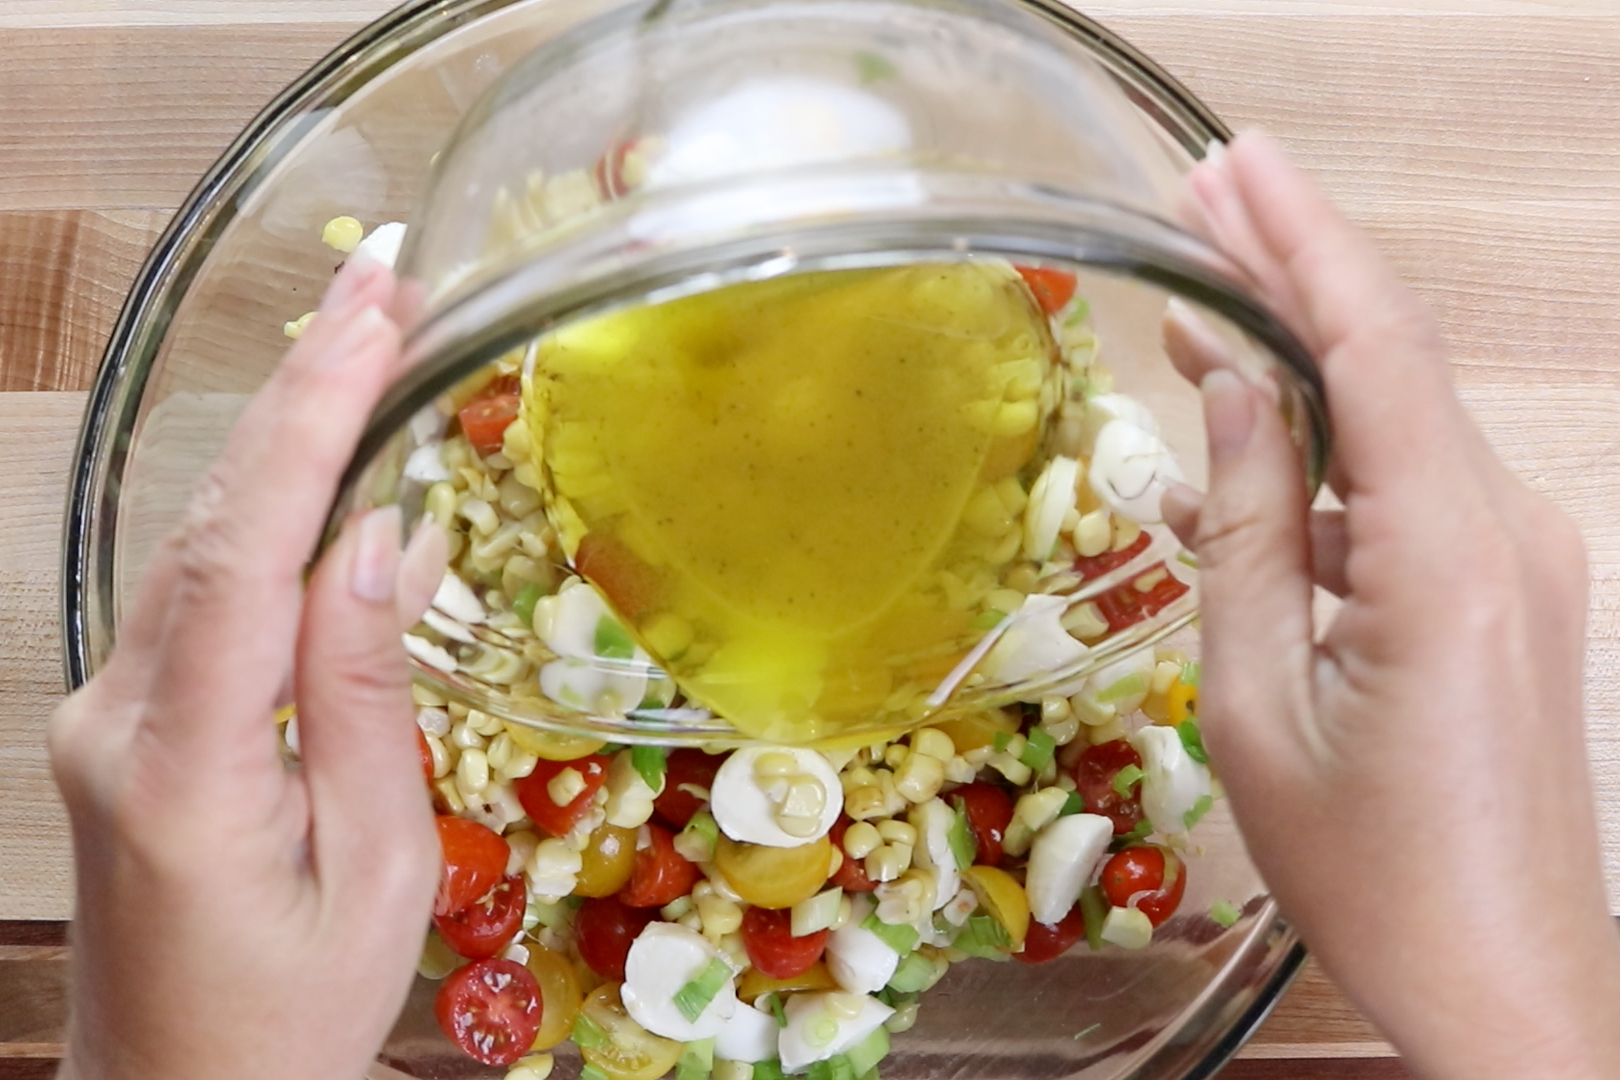 7. Pour the dressing over the salad and gently toss. -